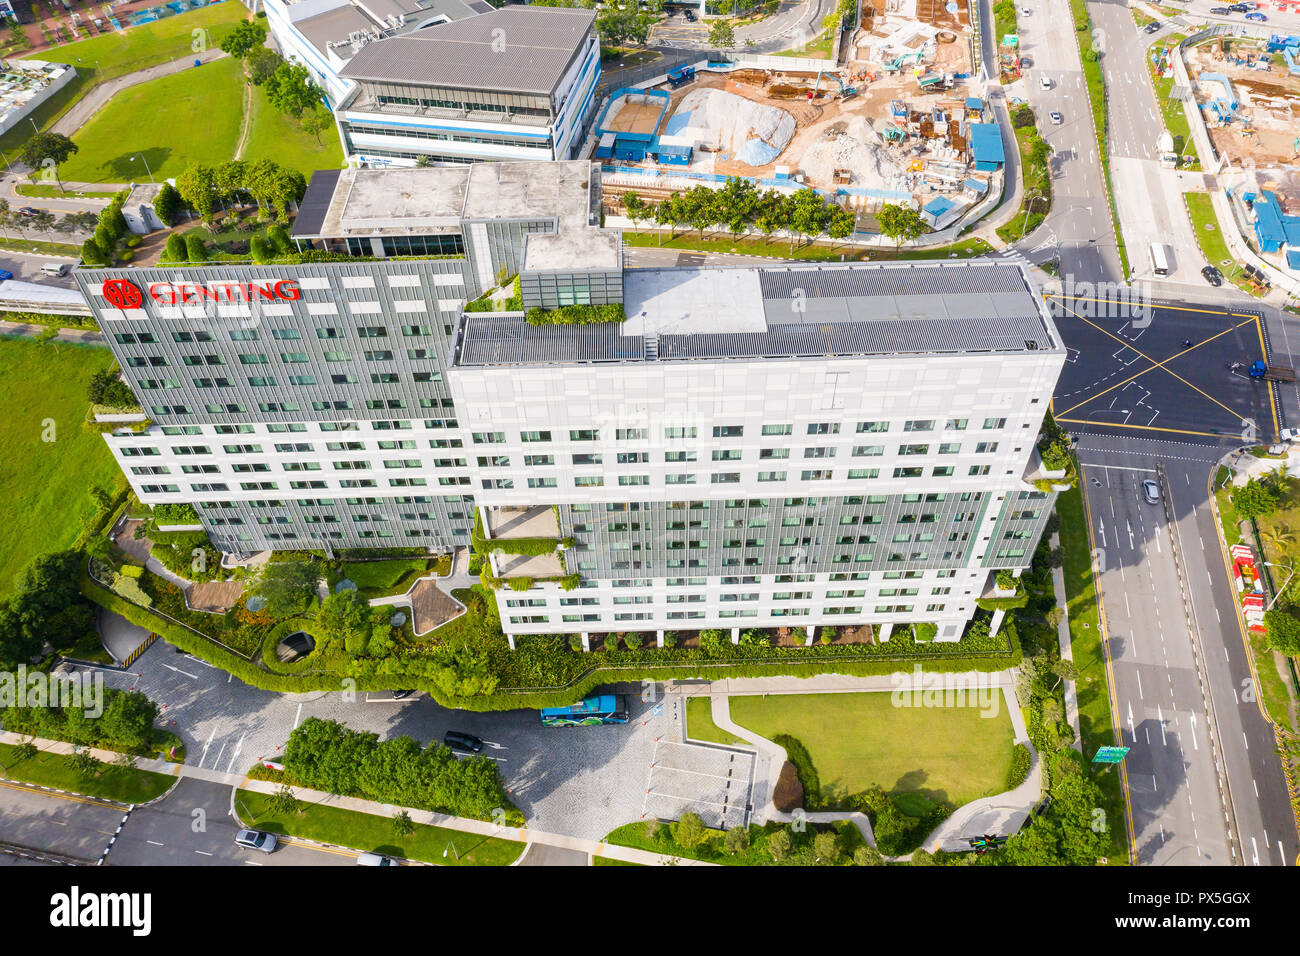 Aerial architecture view of Genting Hotel Jurong in western part of Singapore. - Stock Image